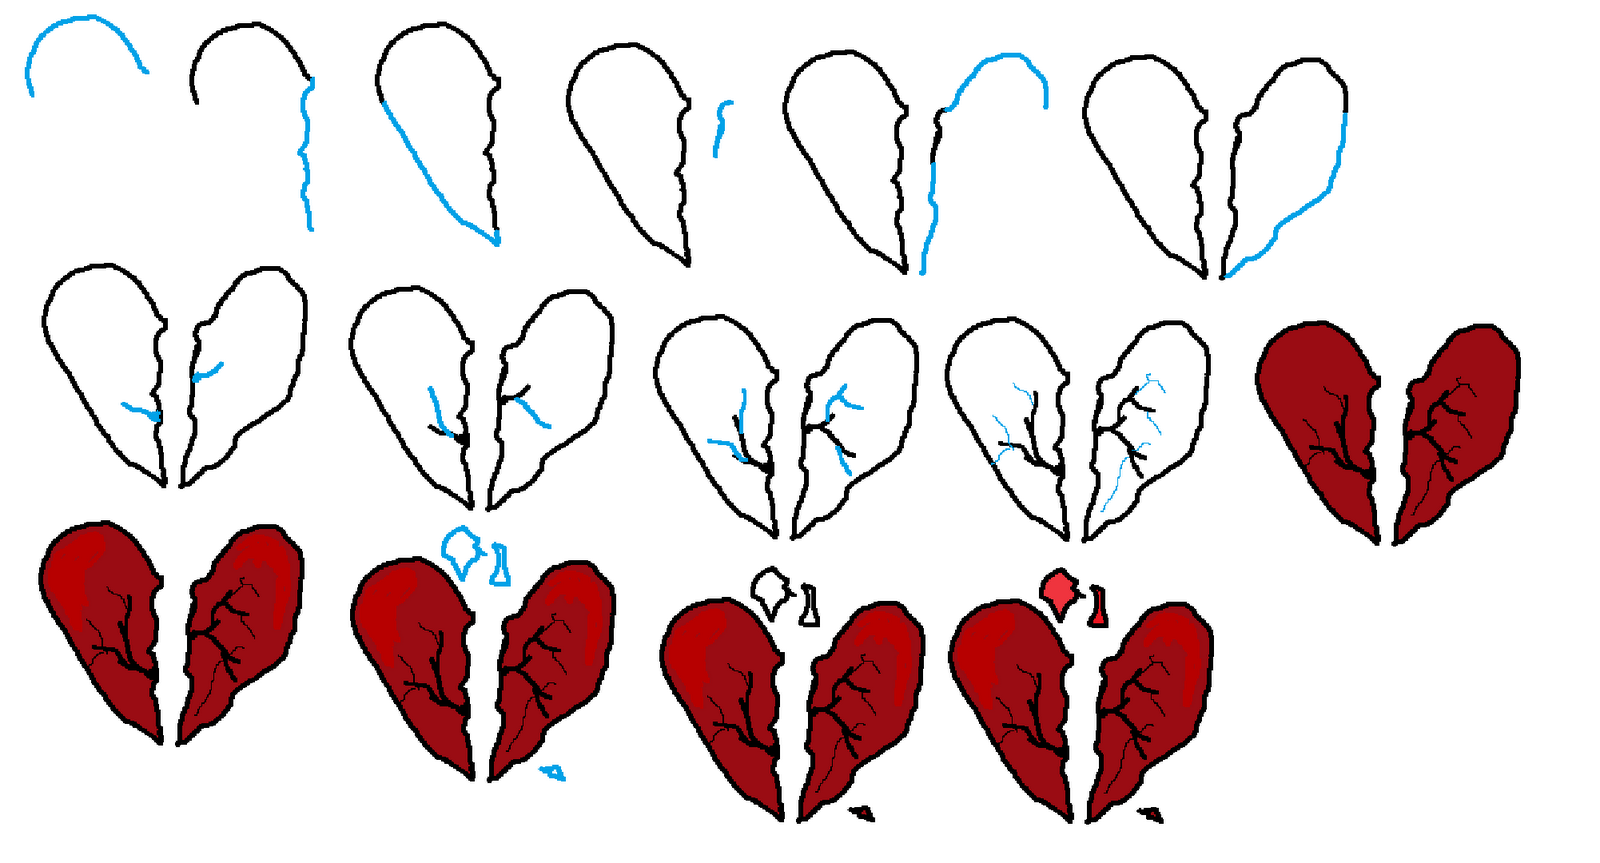 how-to-draw-a-broken-heart pngHow To Draw A Broken Heart Step By Step